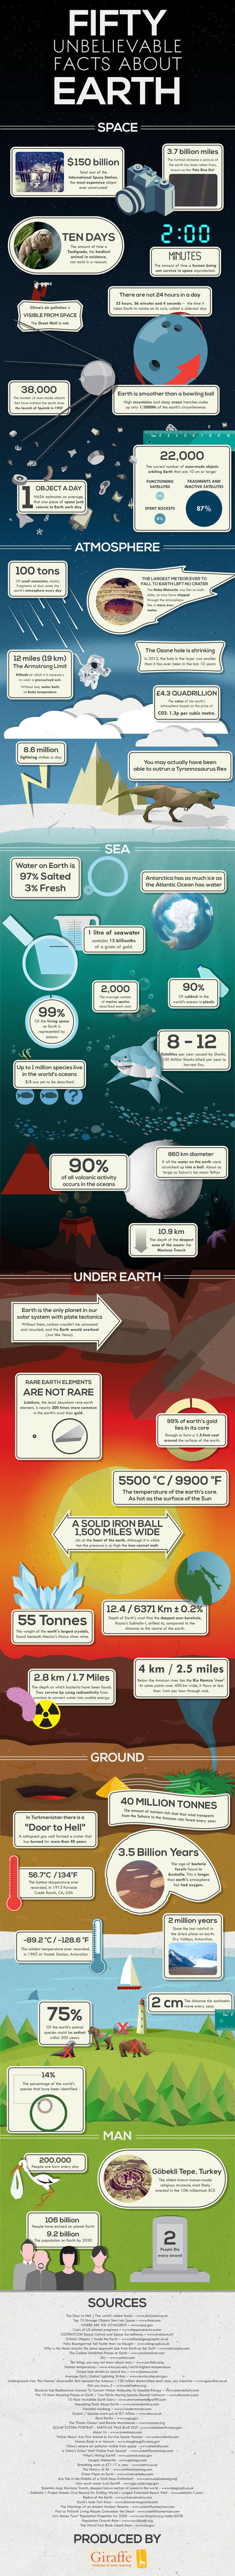 50 Unbelievable Facts About Earth [Infographic] - Giraffe Childcare | Web_eLearning® | Scoop.it